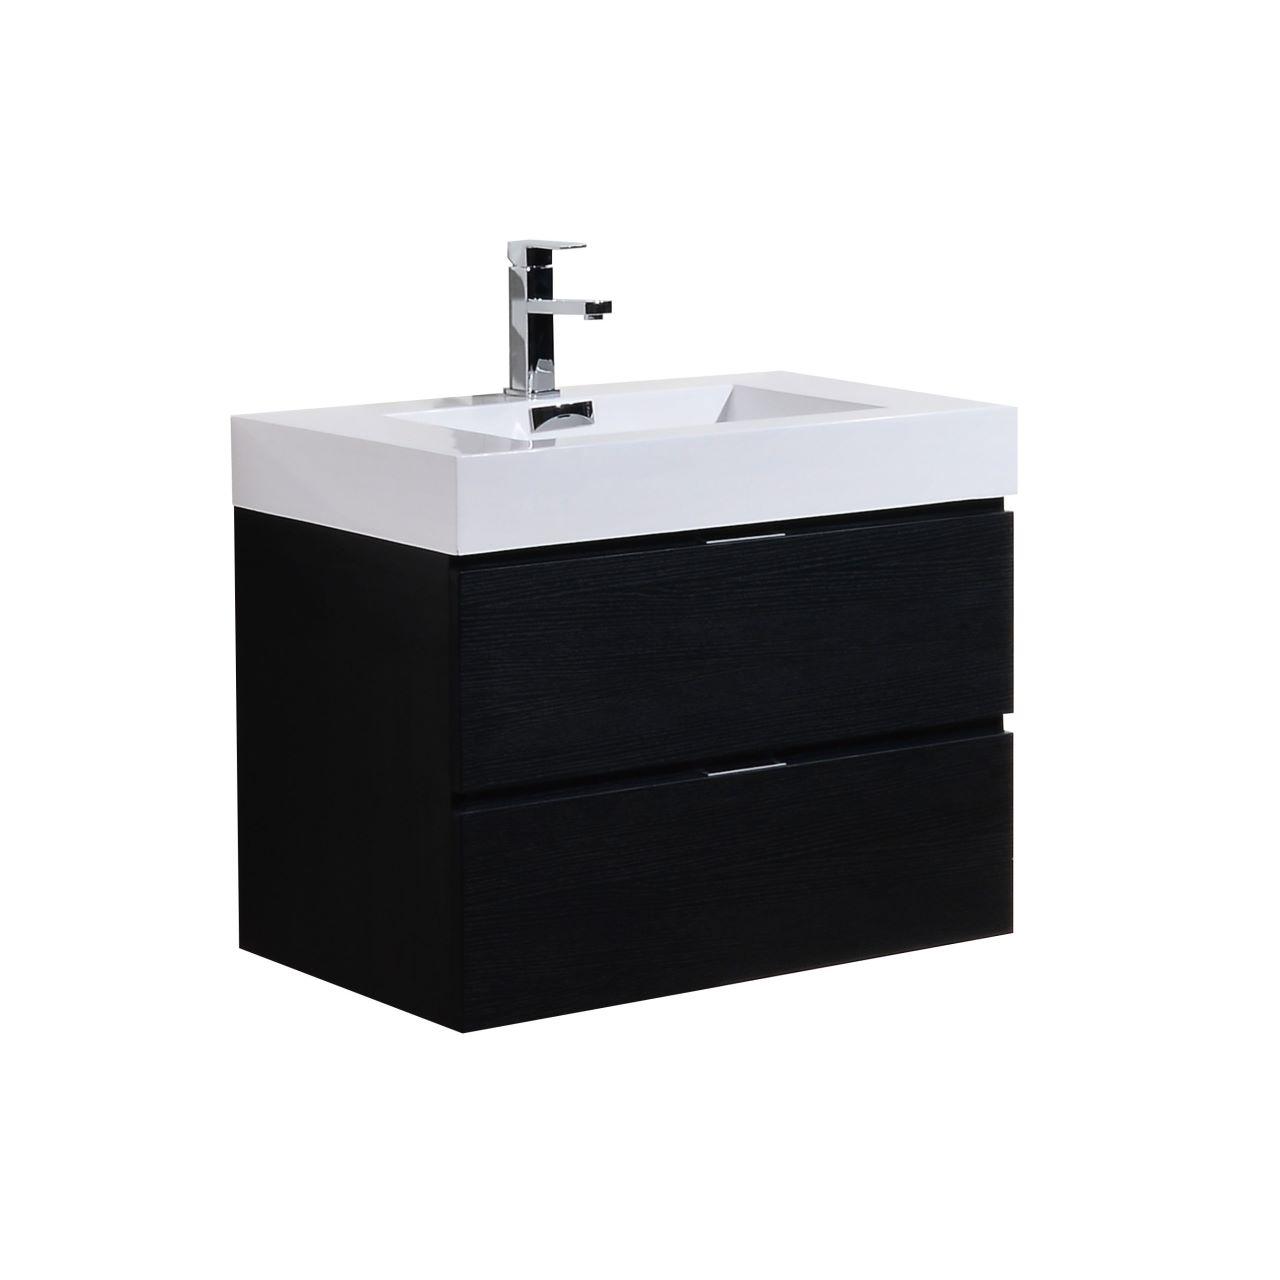 "Kubebath - 24"" Floating Vanity Set - Black Wood Finish"